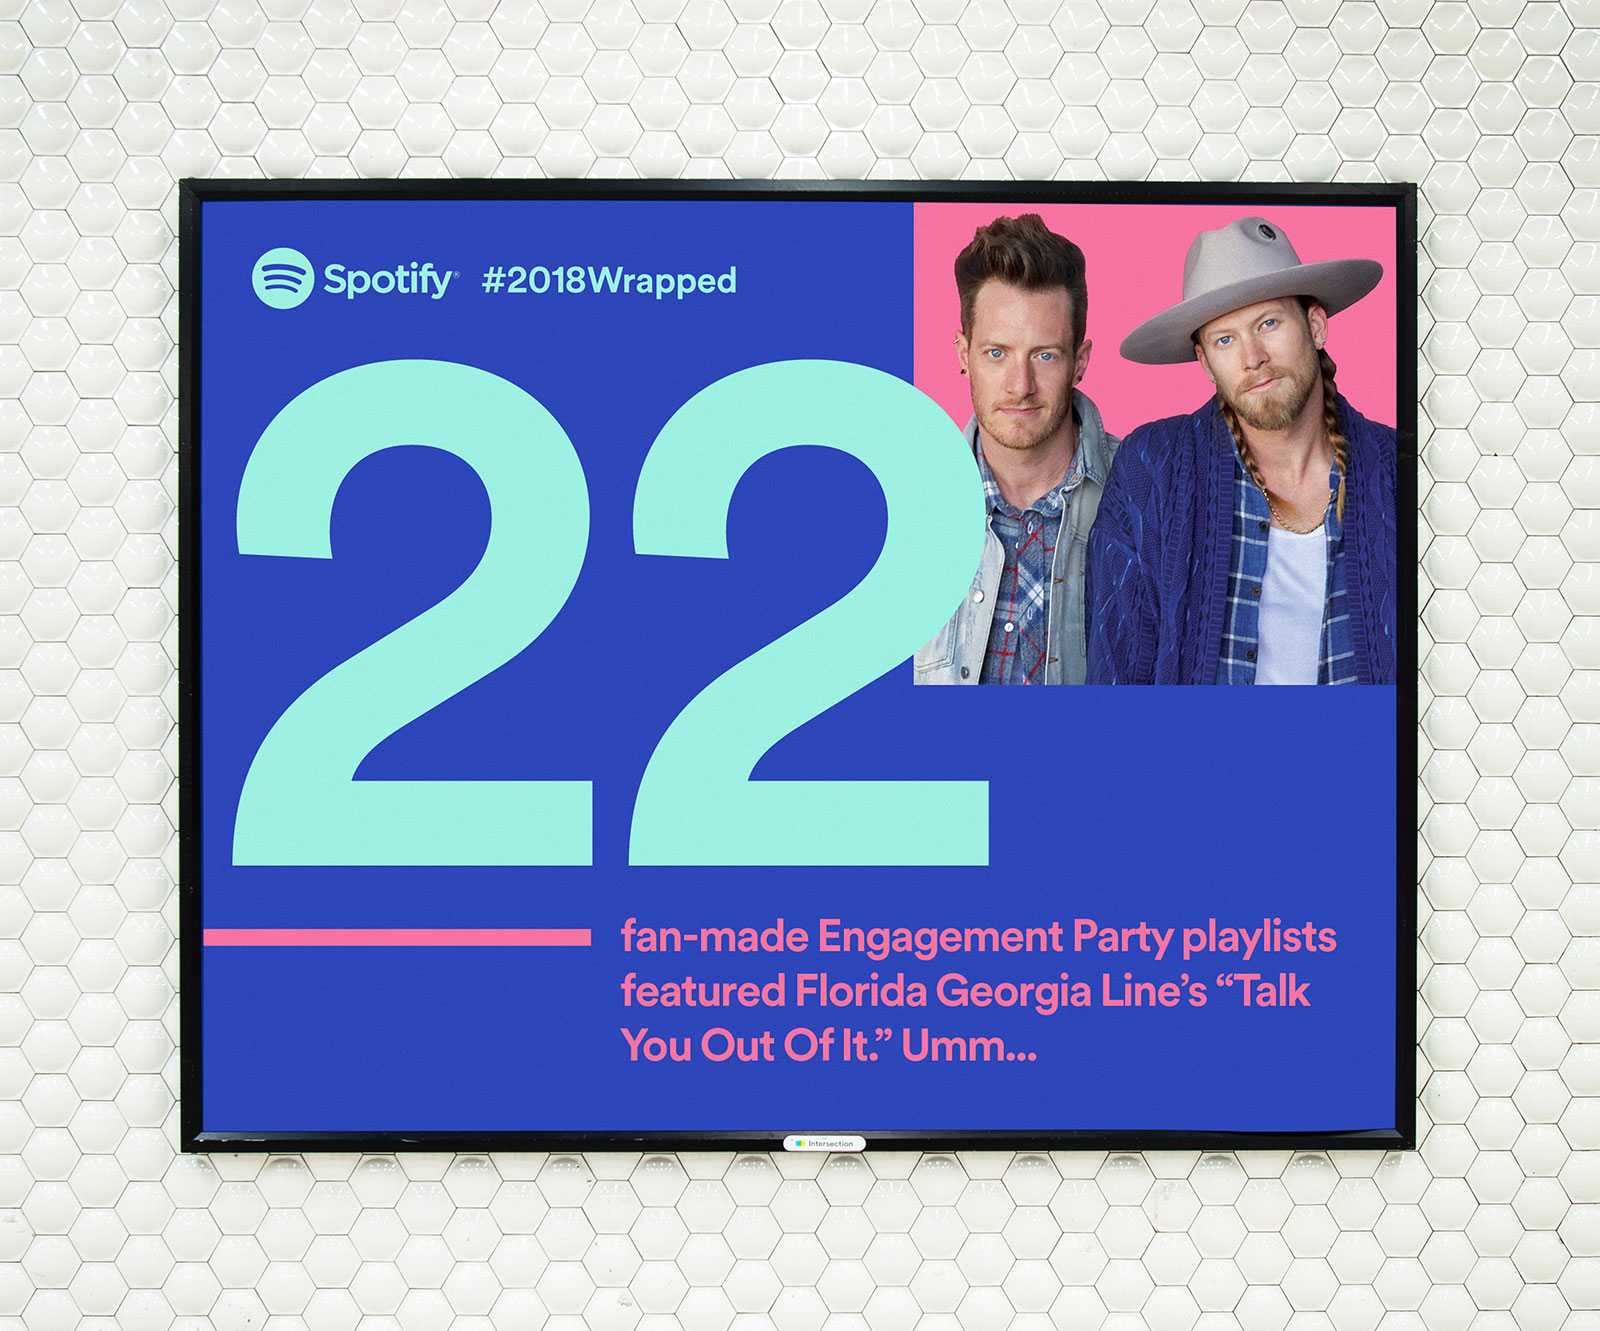 Spotify's 2018 Holiday Ads Are Out, and They Know Just What